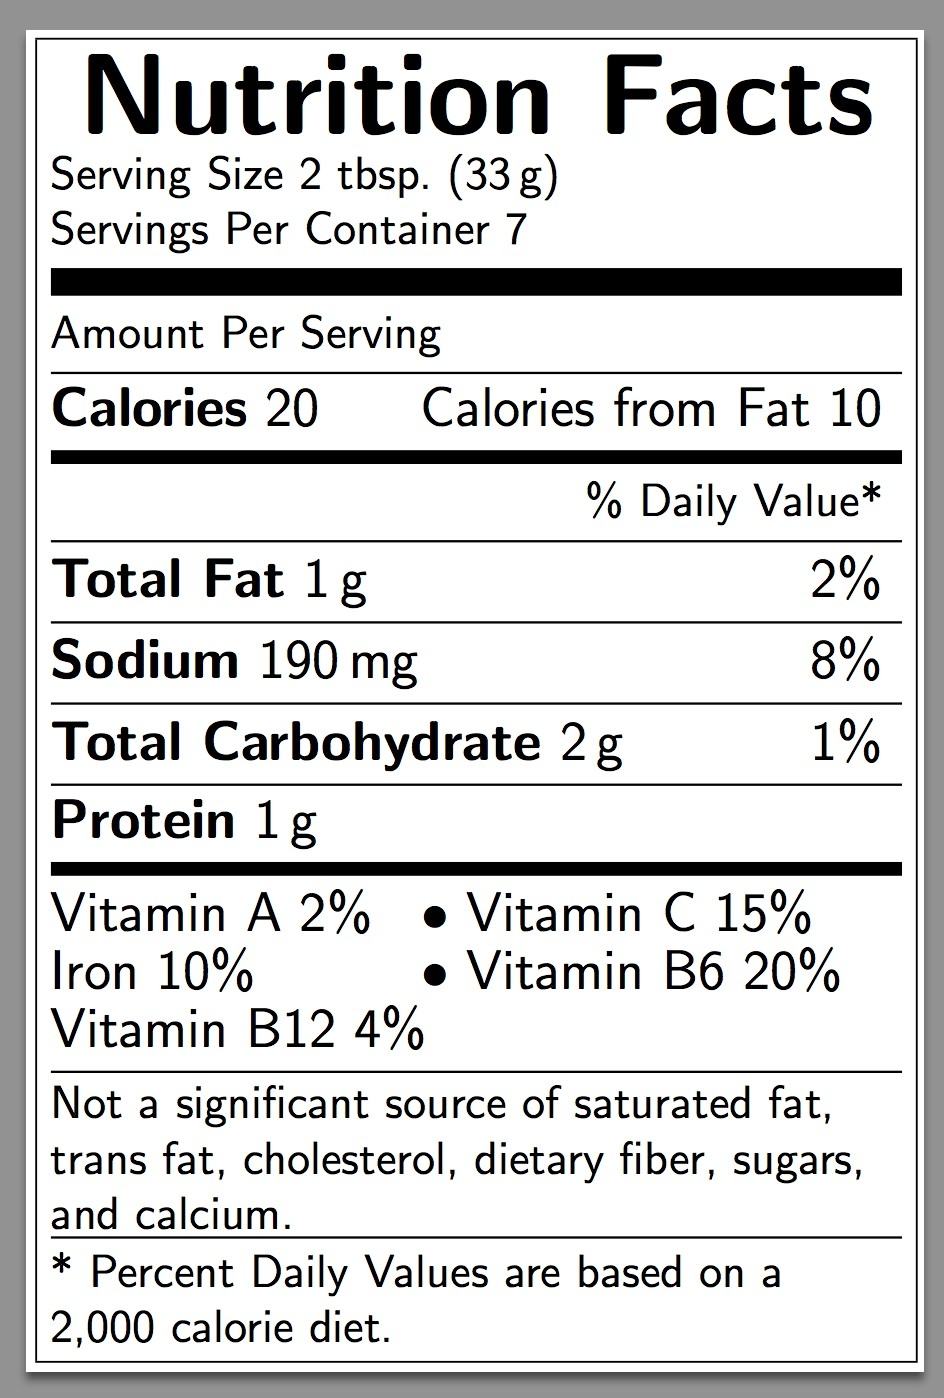 Nutrition Facts Blank Template With